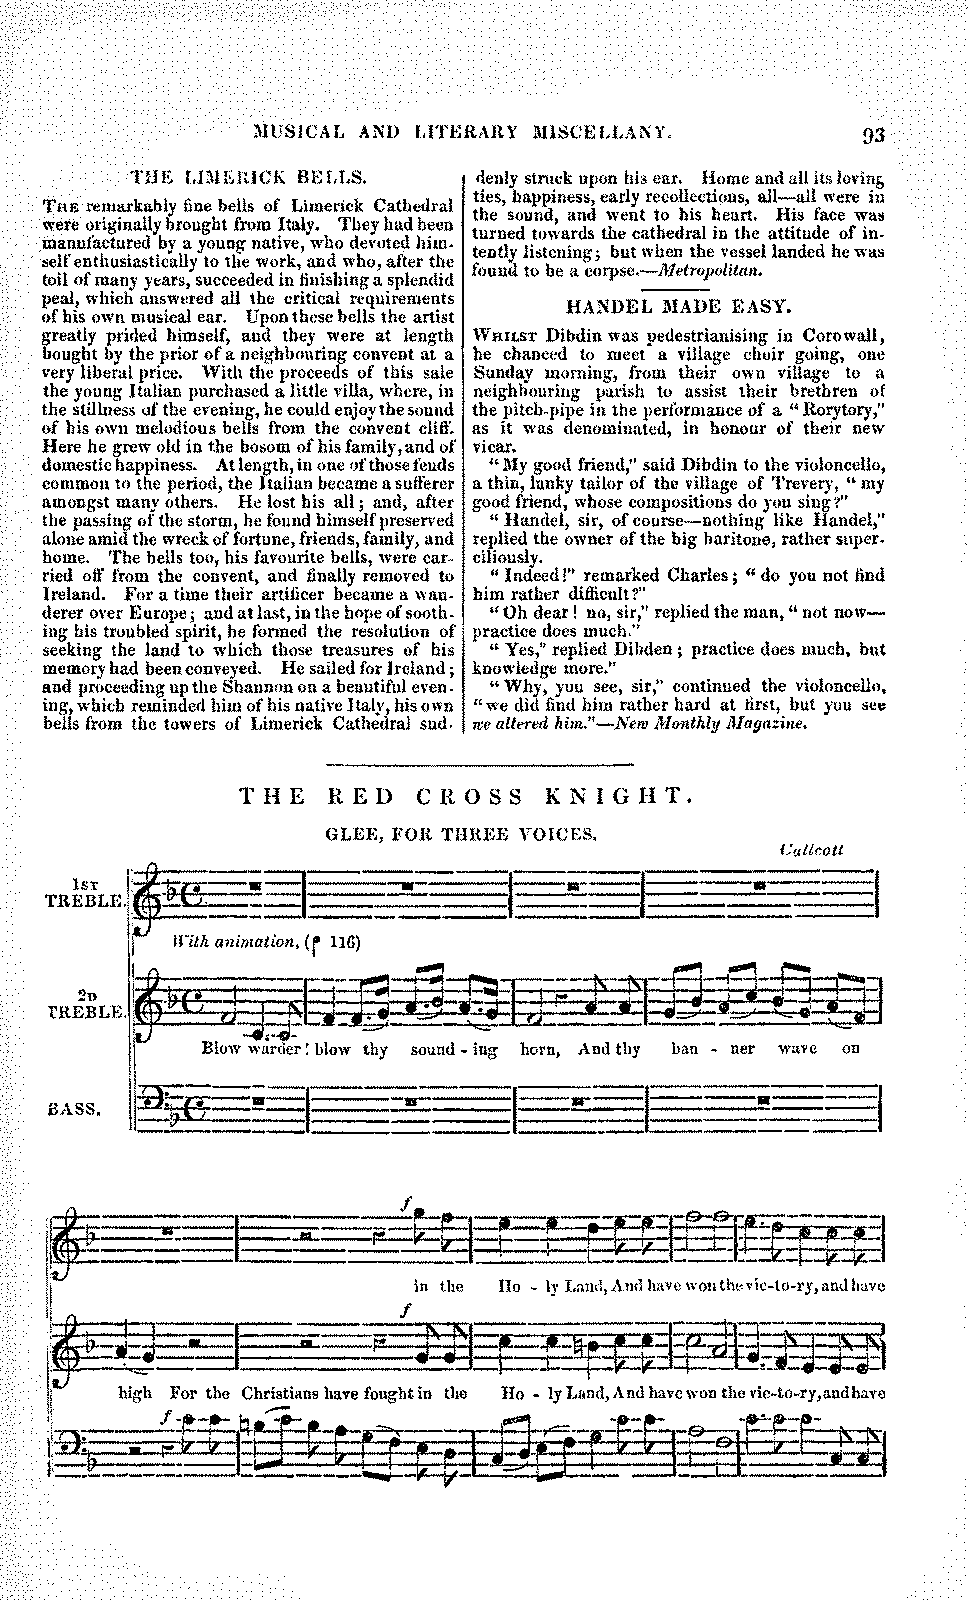 PMLP218277-callcott red cross knight britishminstrel 1.pdf